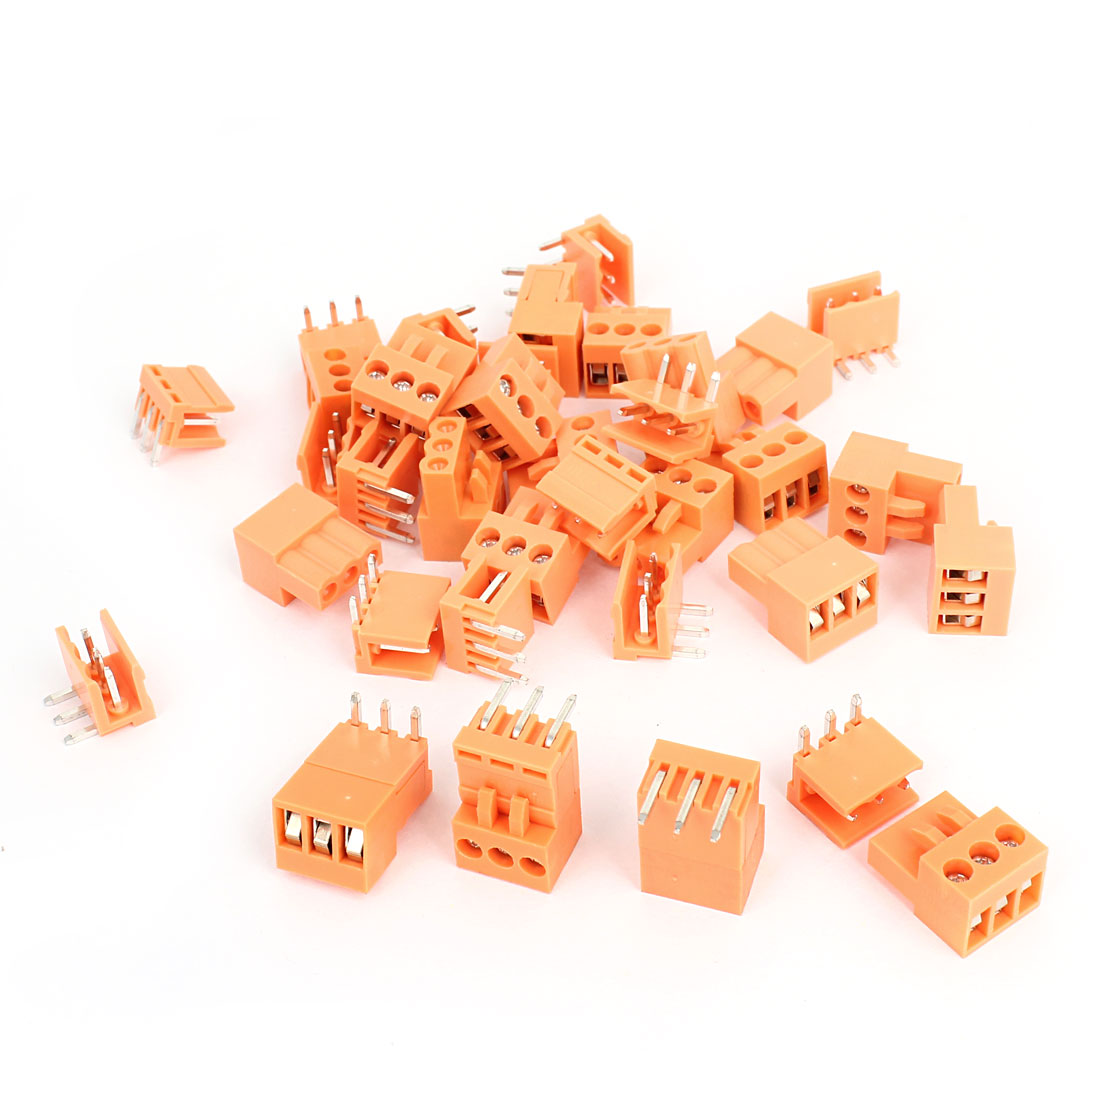 20 Pcs AC 300V 10A 3P Poles PCB Screw Terminal Block Connector 3.96mm Pitch Orange